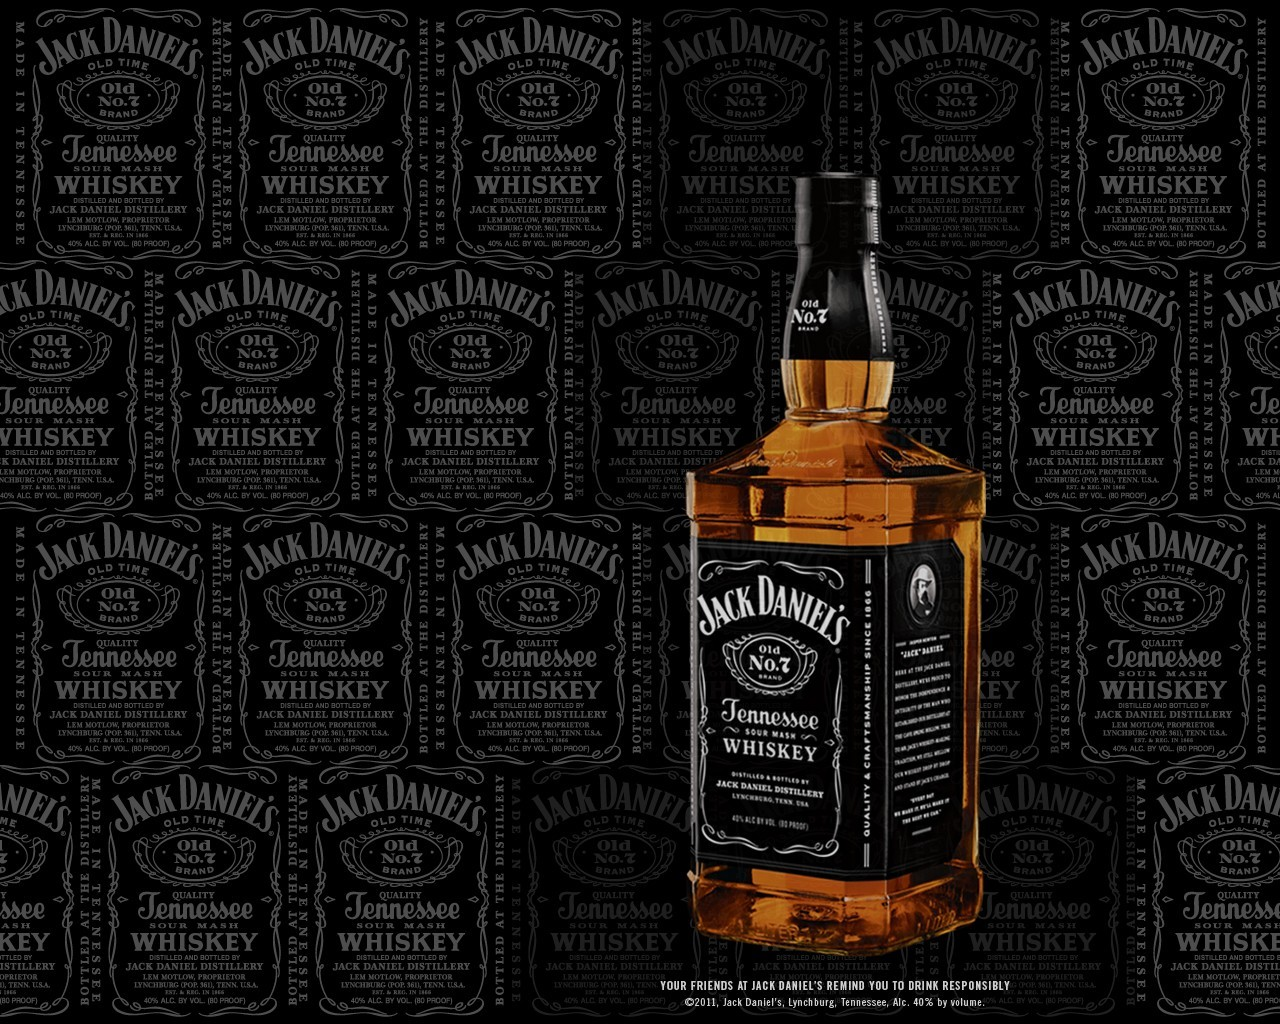 whiskey jack daniels HD Wallpaper